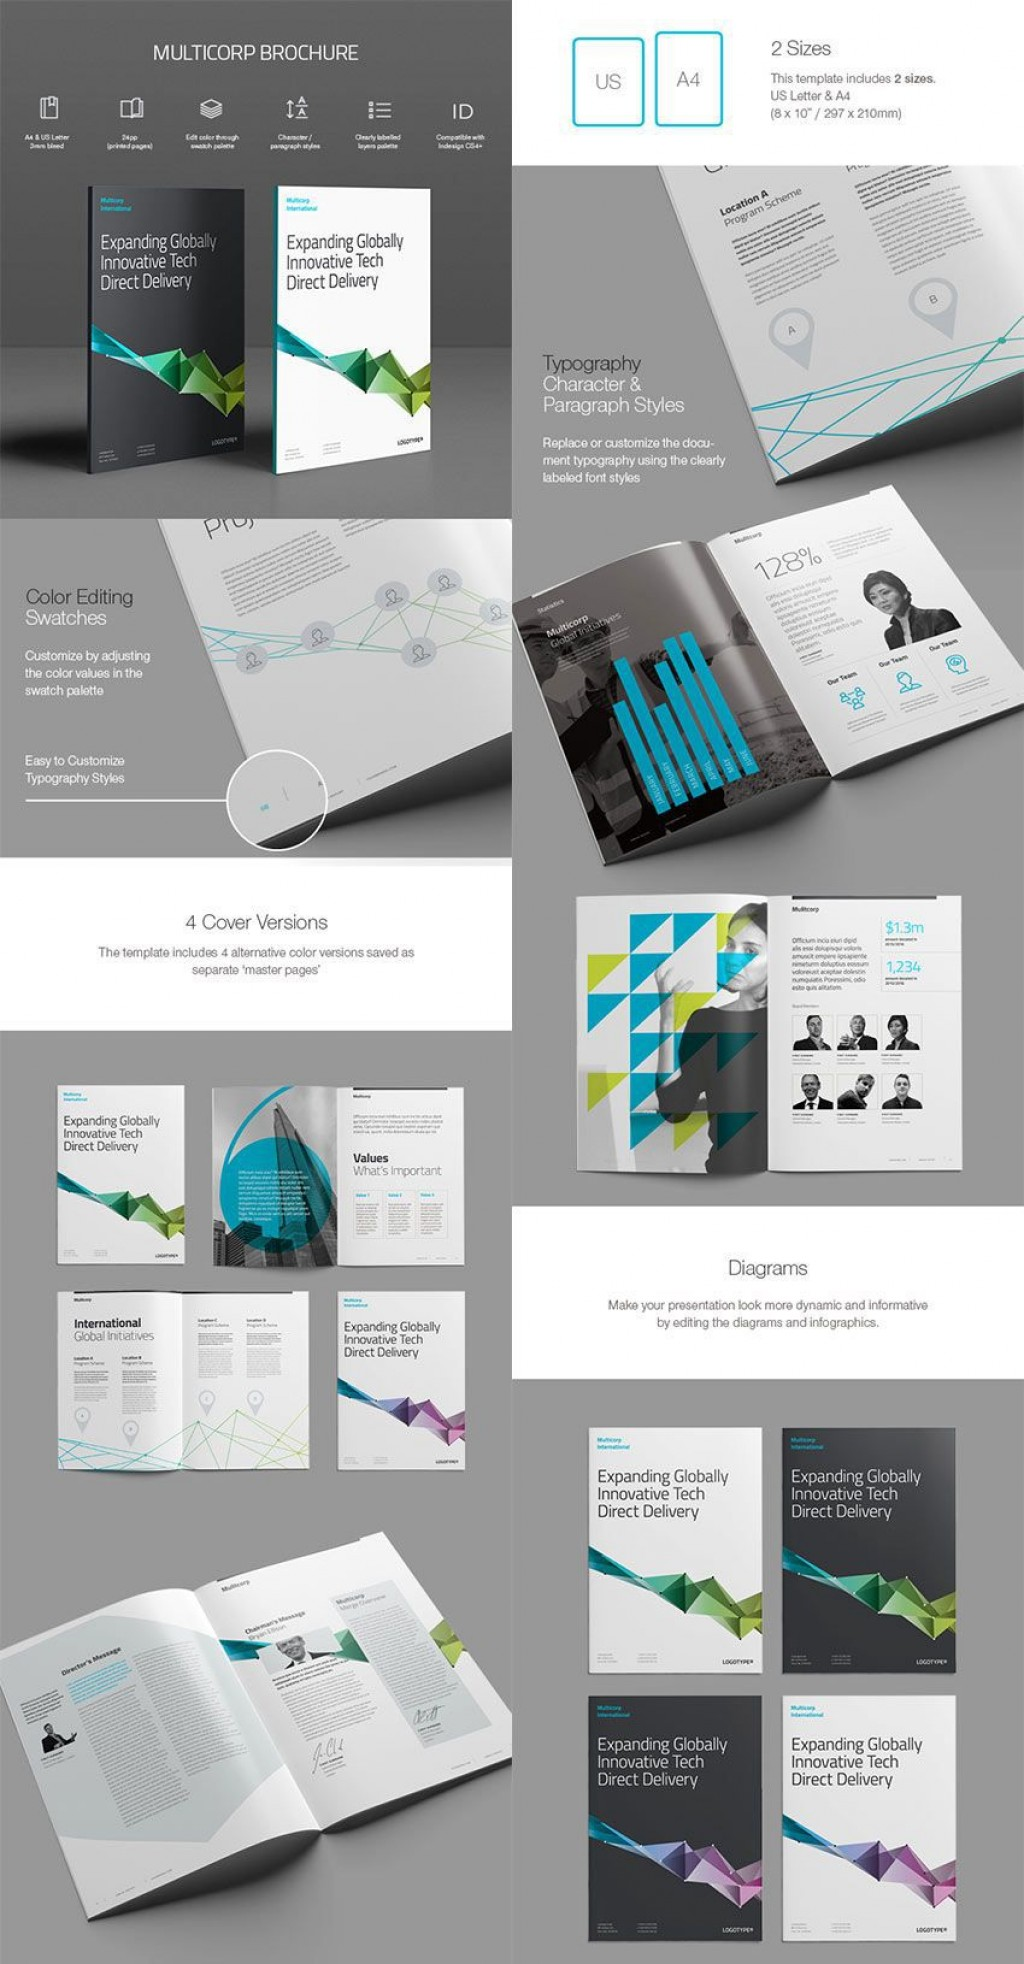 000 Unbelievable Indesign A4 Brochure Template Free Download Highest Clarity Large